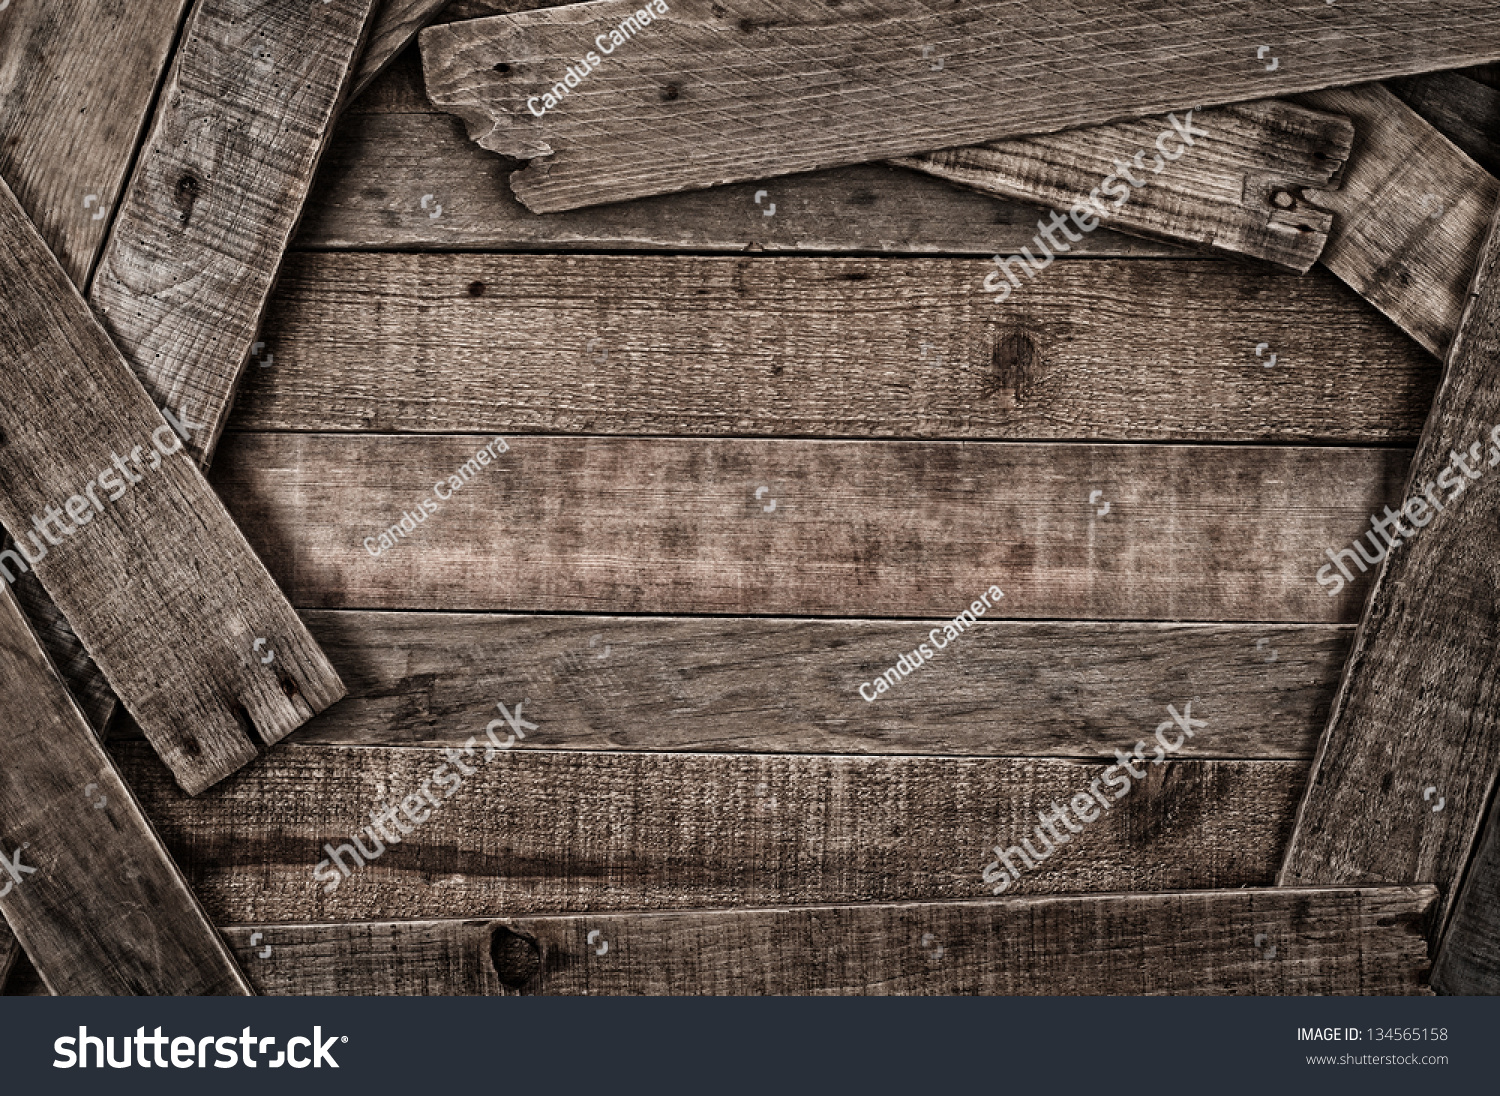 Grunge Country Style Rustic Wood Background With Center Copyspace